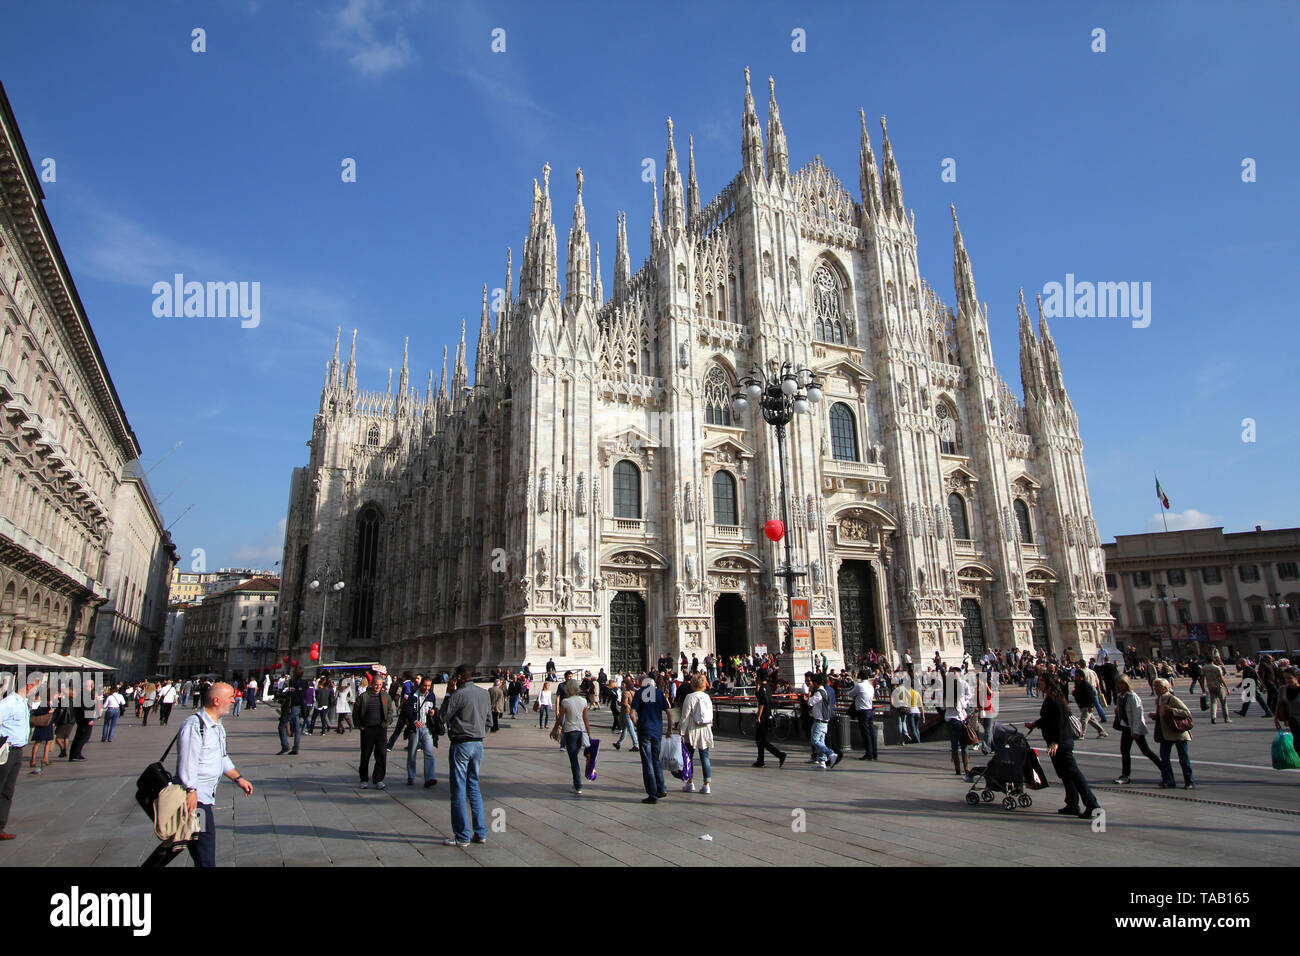 MILAN - OCTOBER 6: Tourists stroll at Piazza Duomo on October 6, 2010 in Milan, Italy. As of 2006, Milan was the 42nd most visited city worldwide, wit - Stock Image